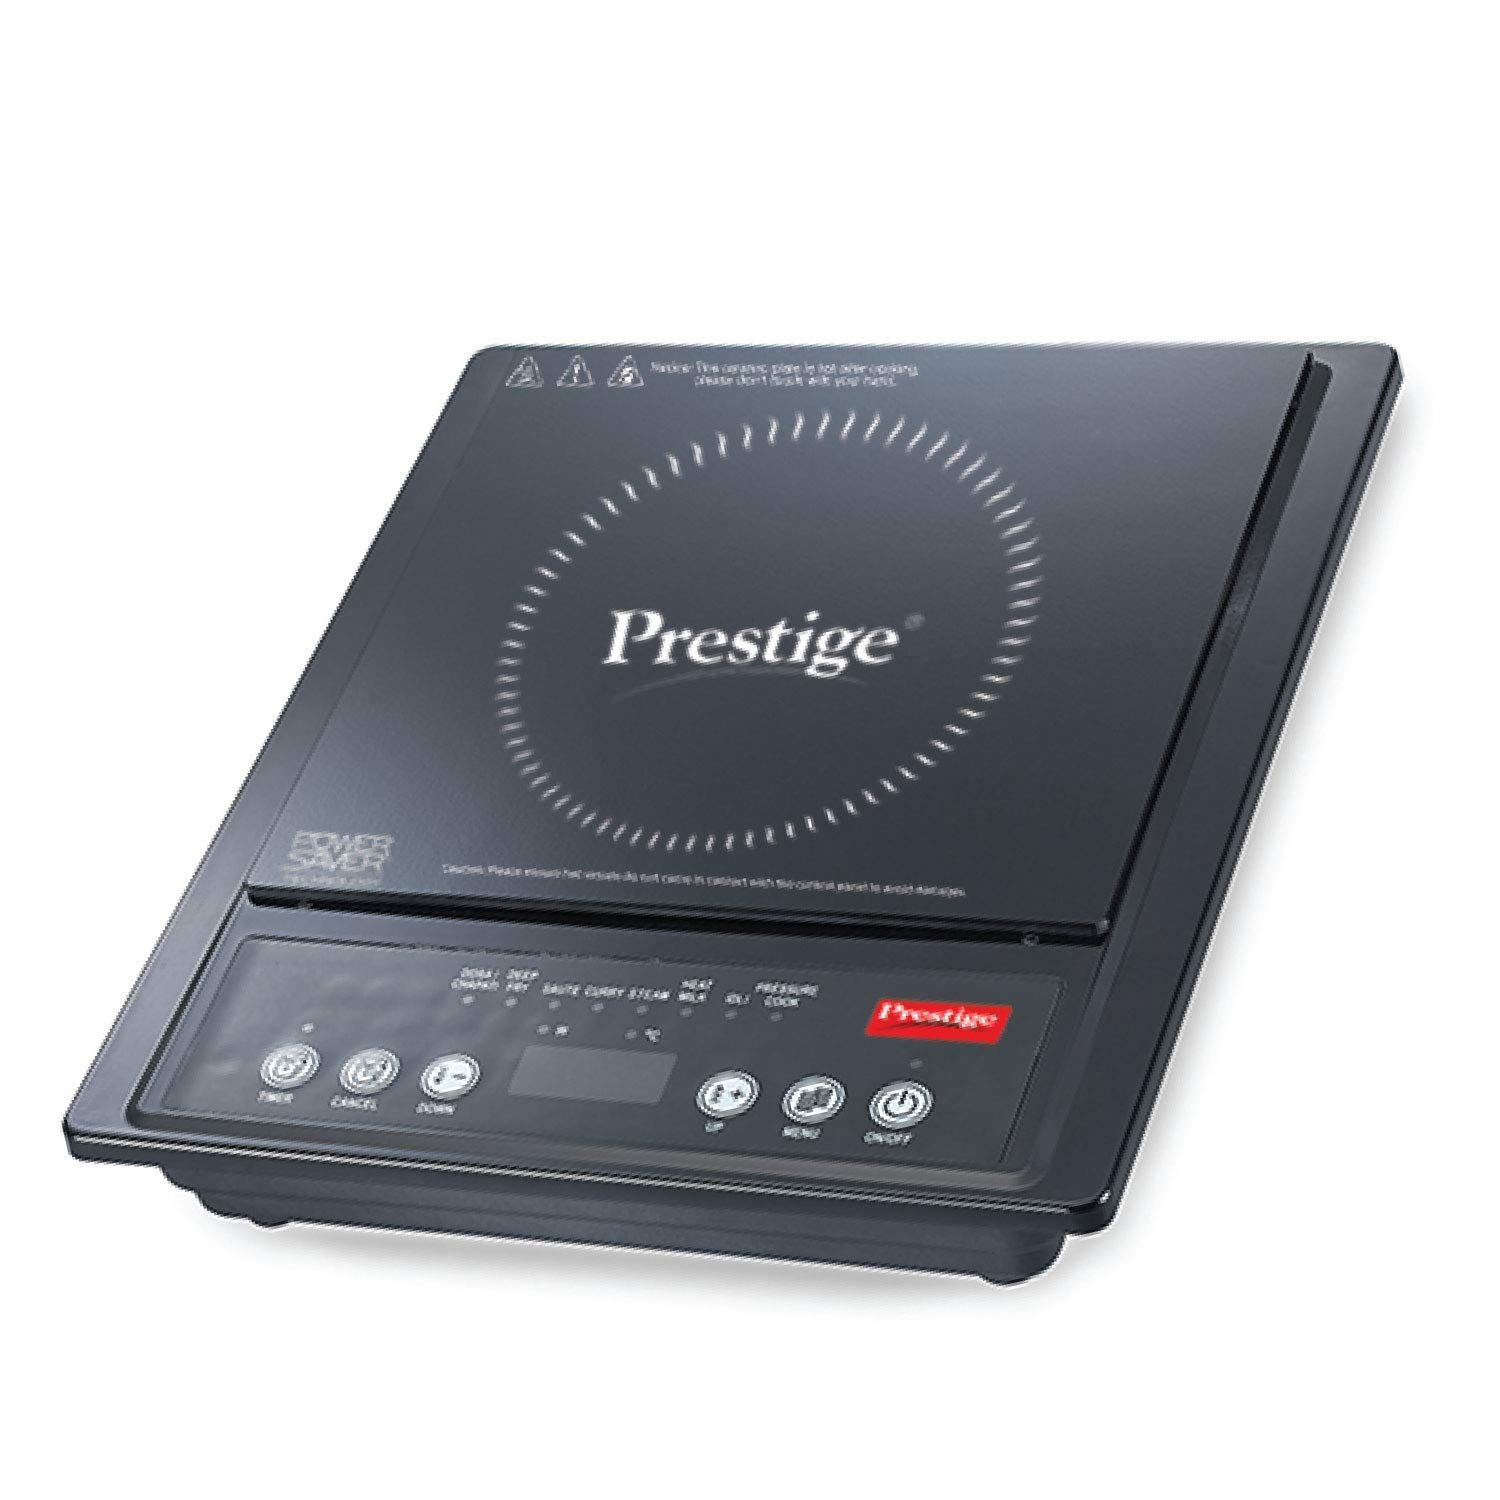 Buy Prestige Pic 120 1500 Watt Induction Cooktop With Push Button Alittle Late But Heres A Circuit That I Used For Heating Online At Low Prices In India